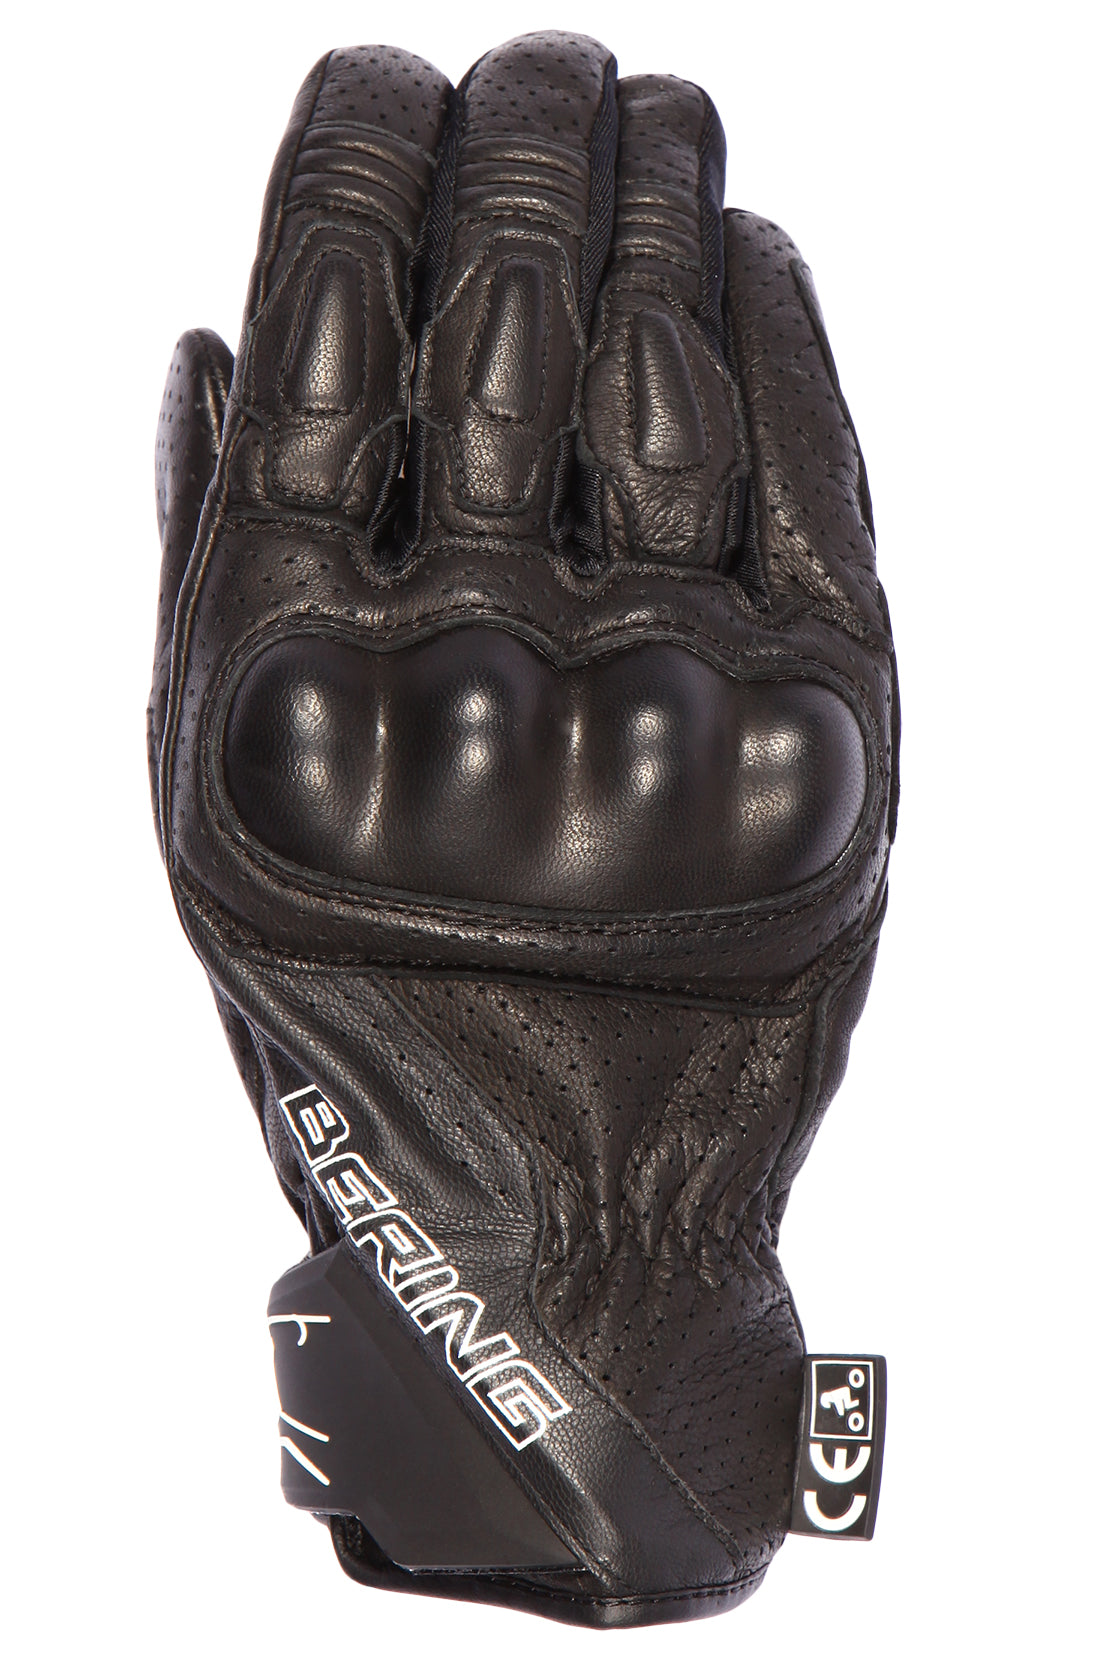 Bering Raven Ladies Gloves, Ladies Gloves, Bering - Averys Motorcycles